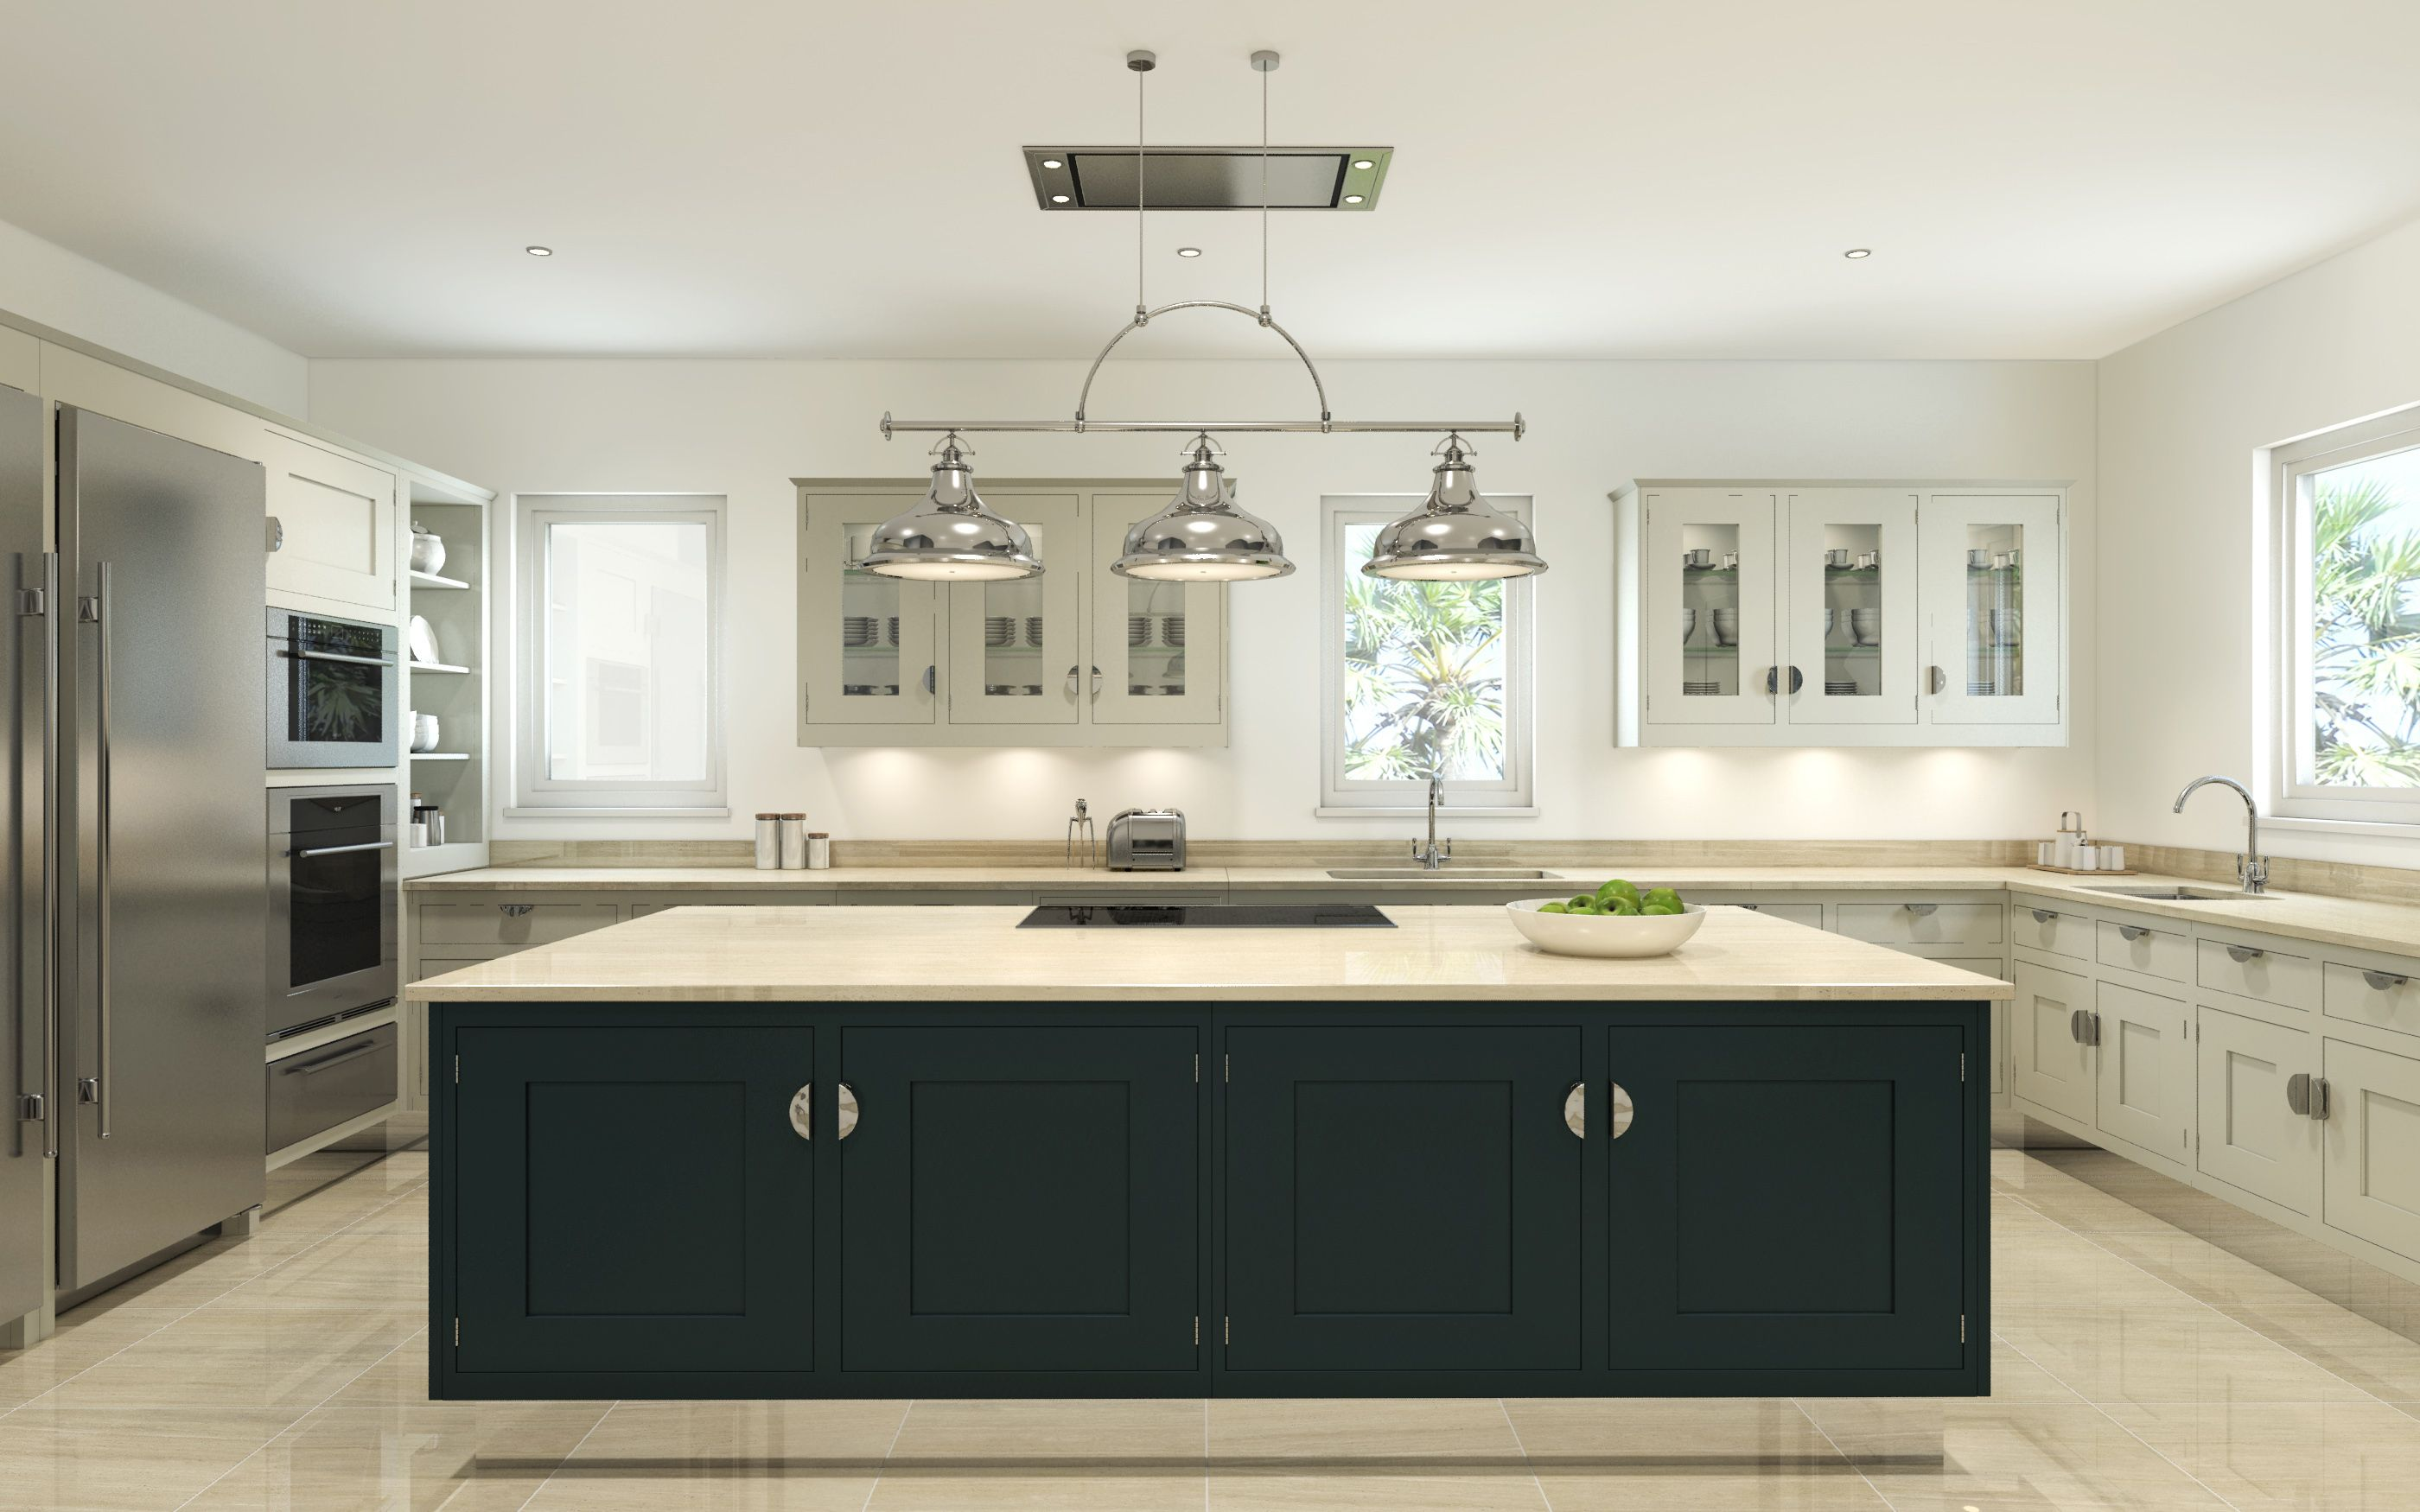 cgi kitchen for smallbone www smallbone co uk my cad cgi jobs